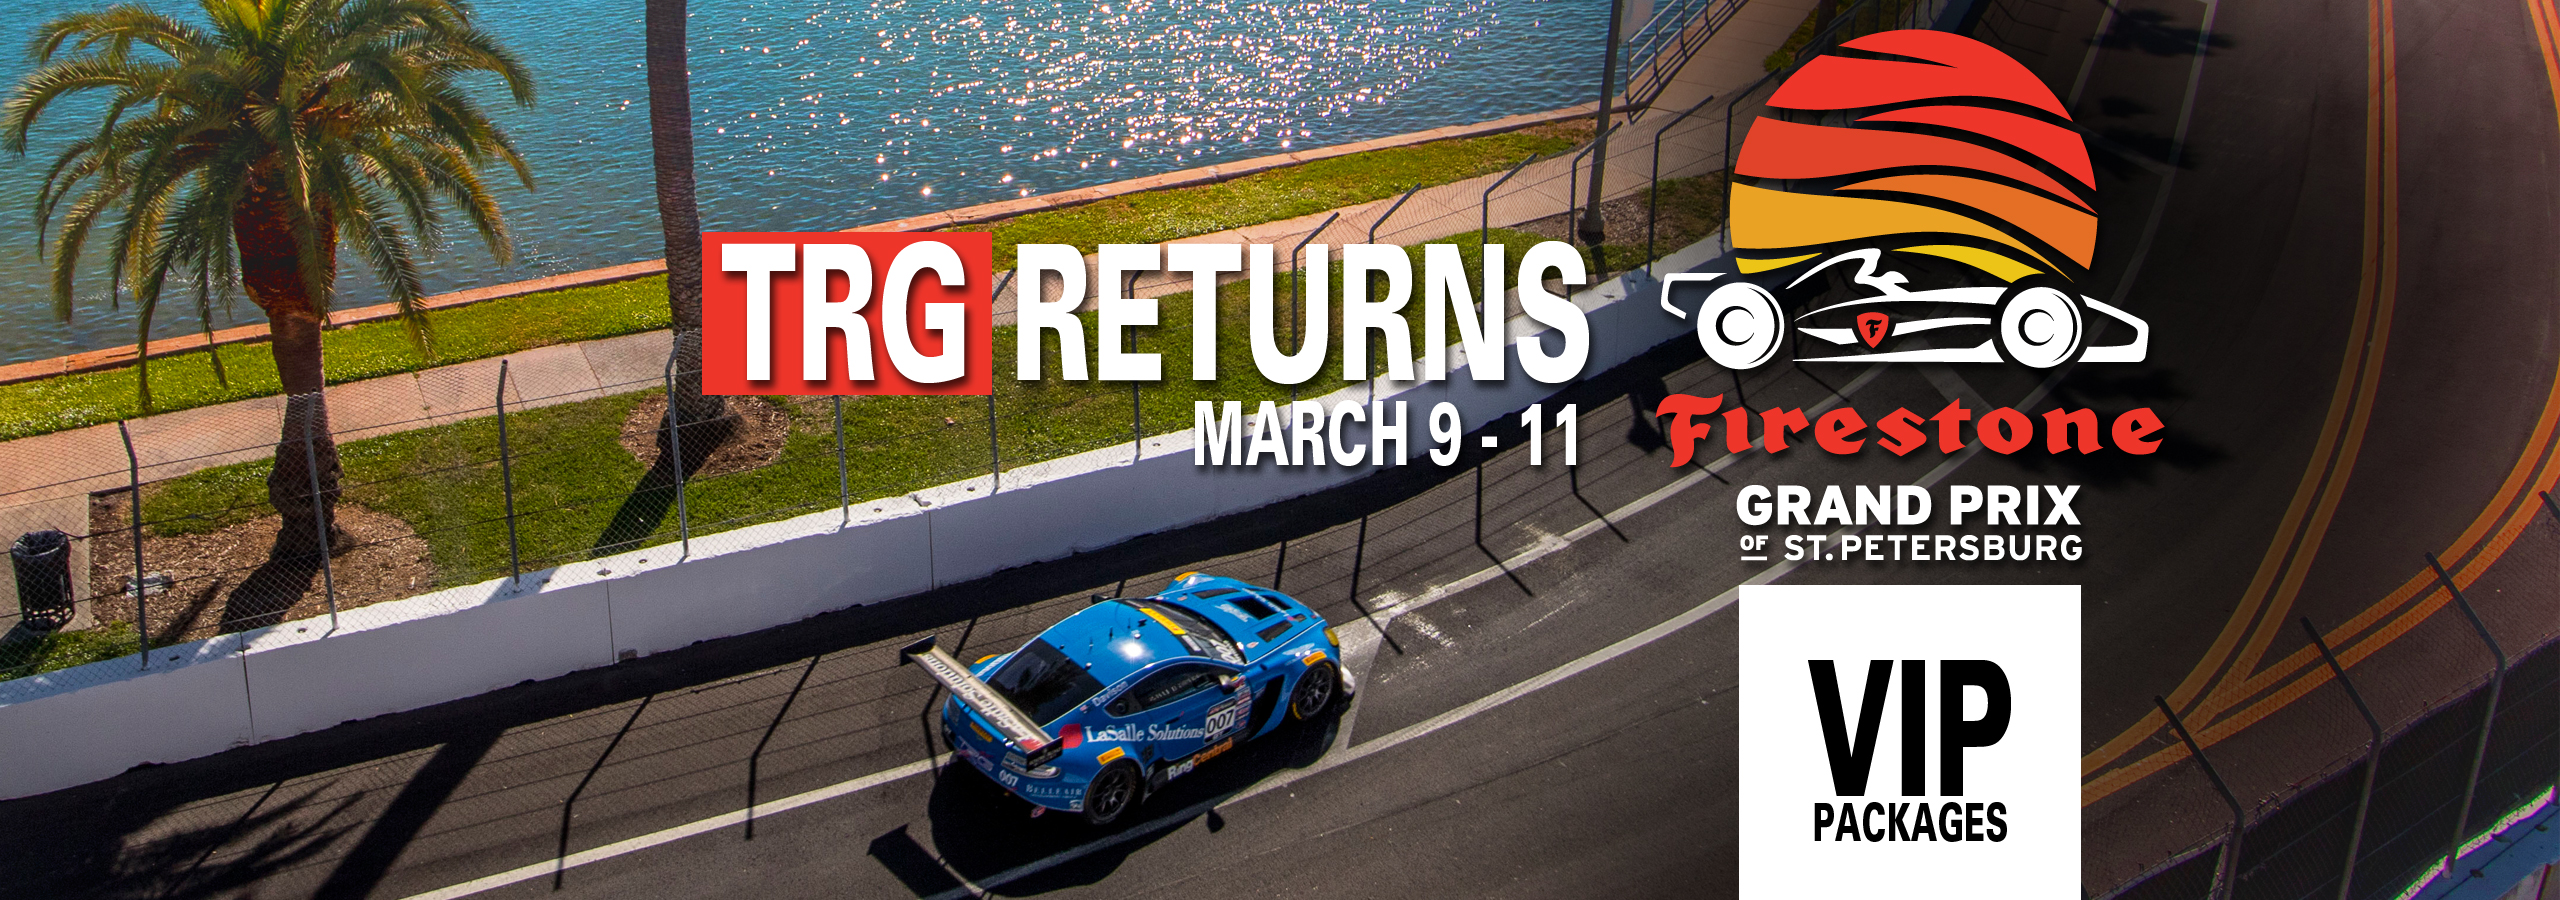 TRG Returns to the Grand Prix of St. Petersburg